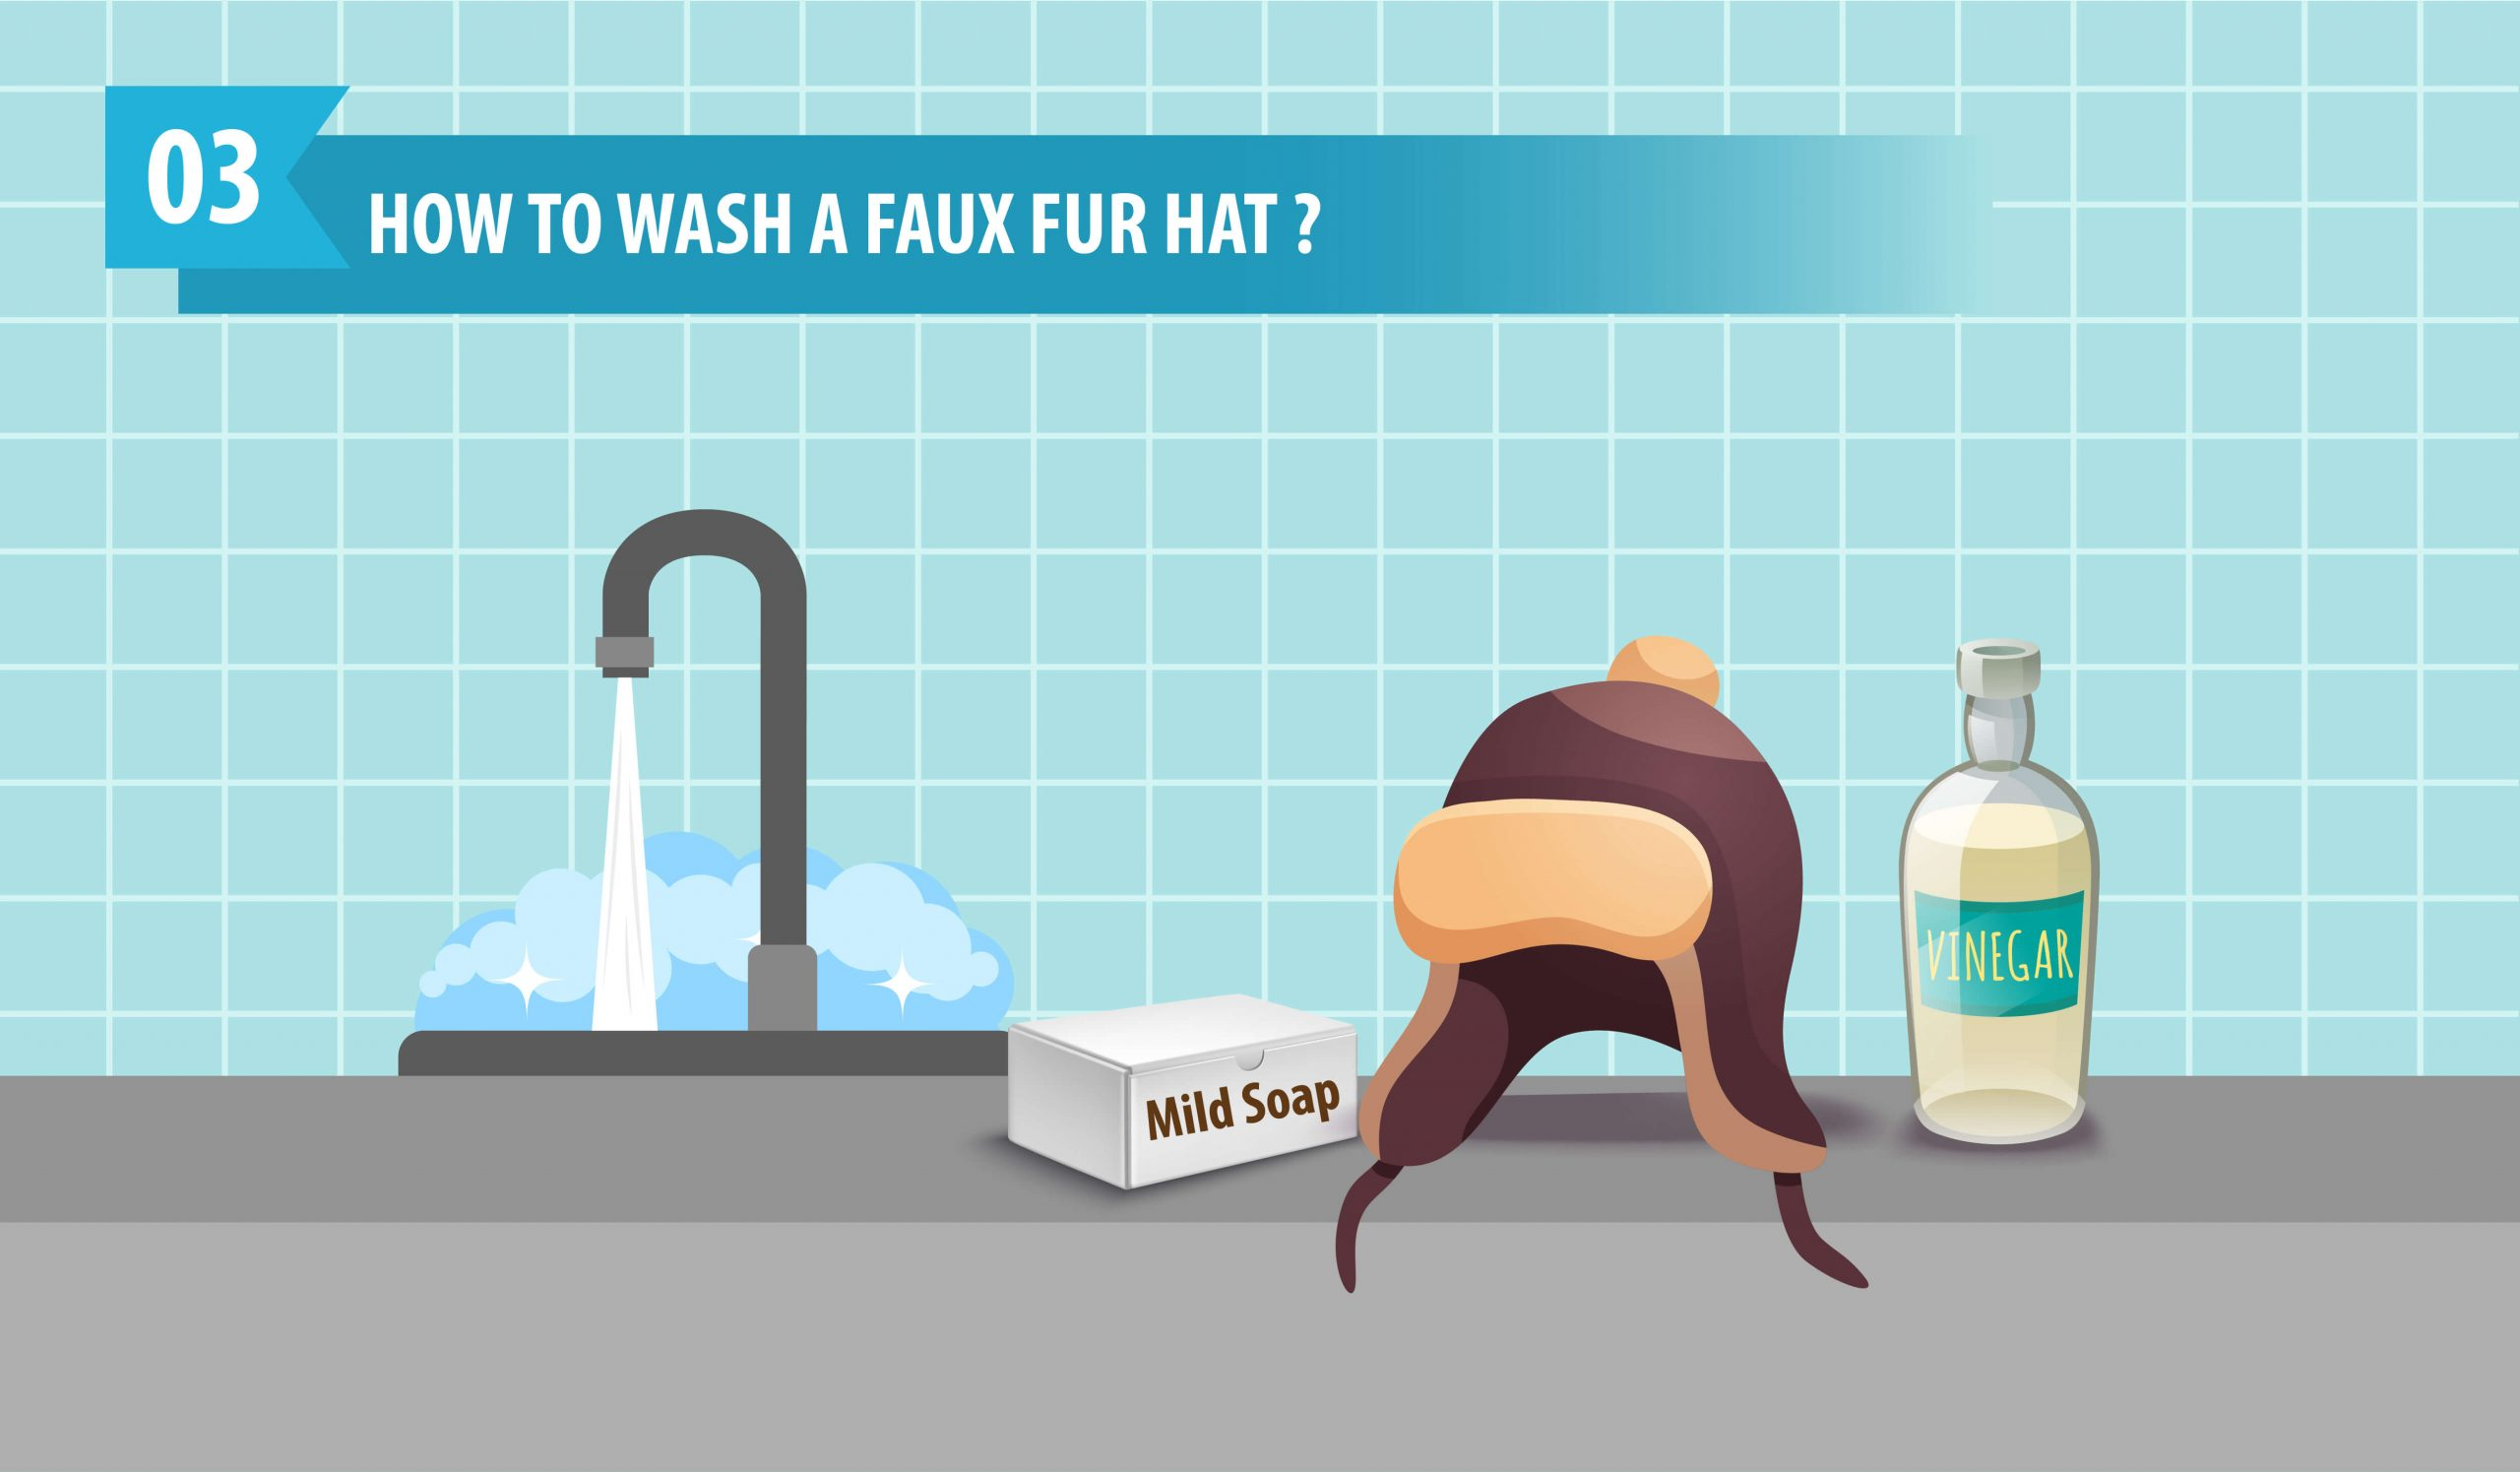 How to Wash A Faux Fur Hat